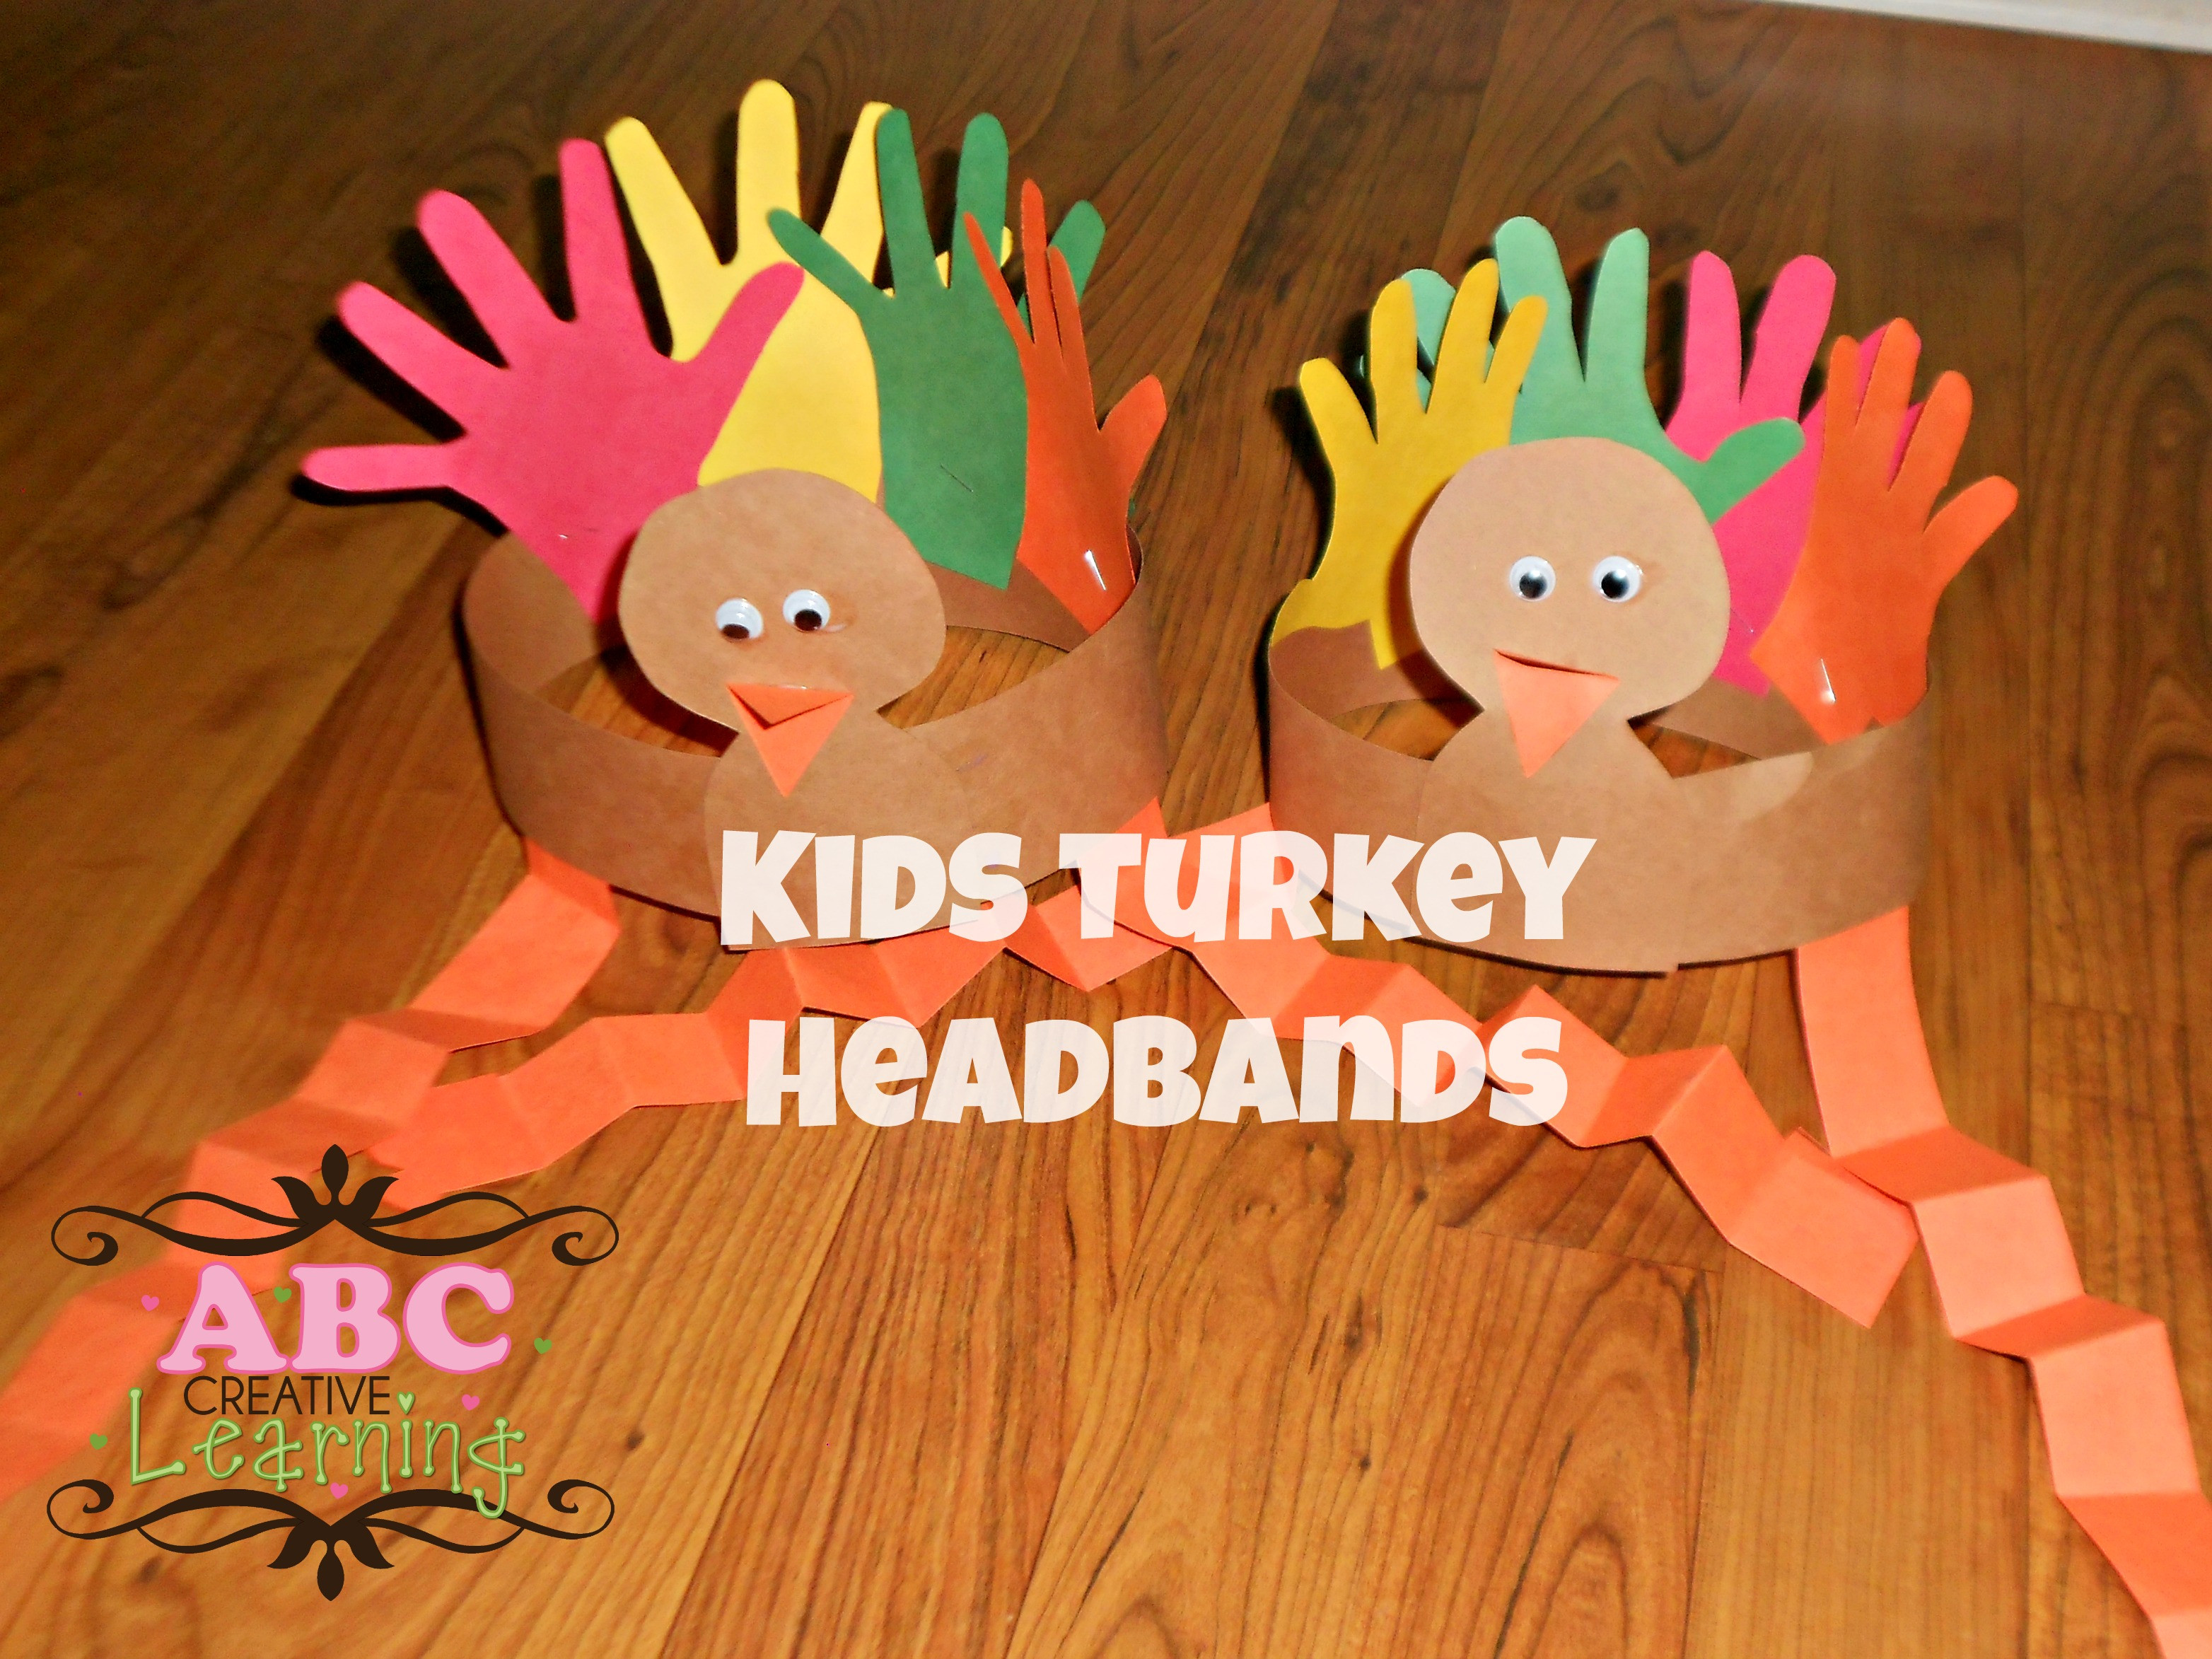 Best ideas about Thanksgiving Arts And Crafts For Kids . Save or Pin Turkey Headband Craft for Kids Now.